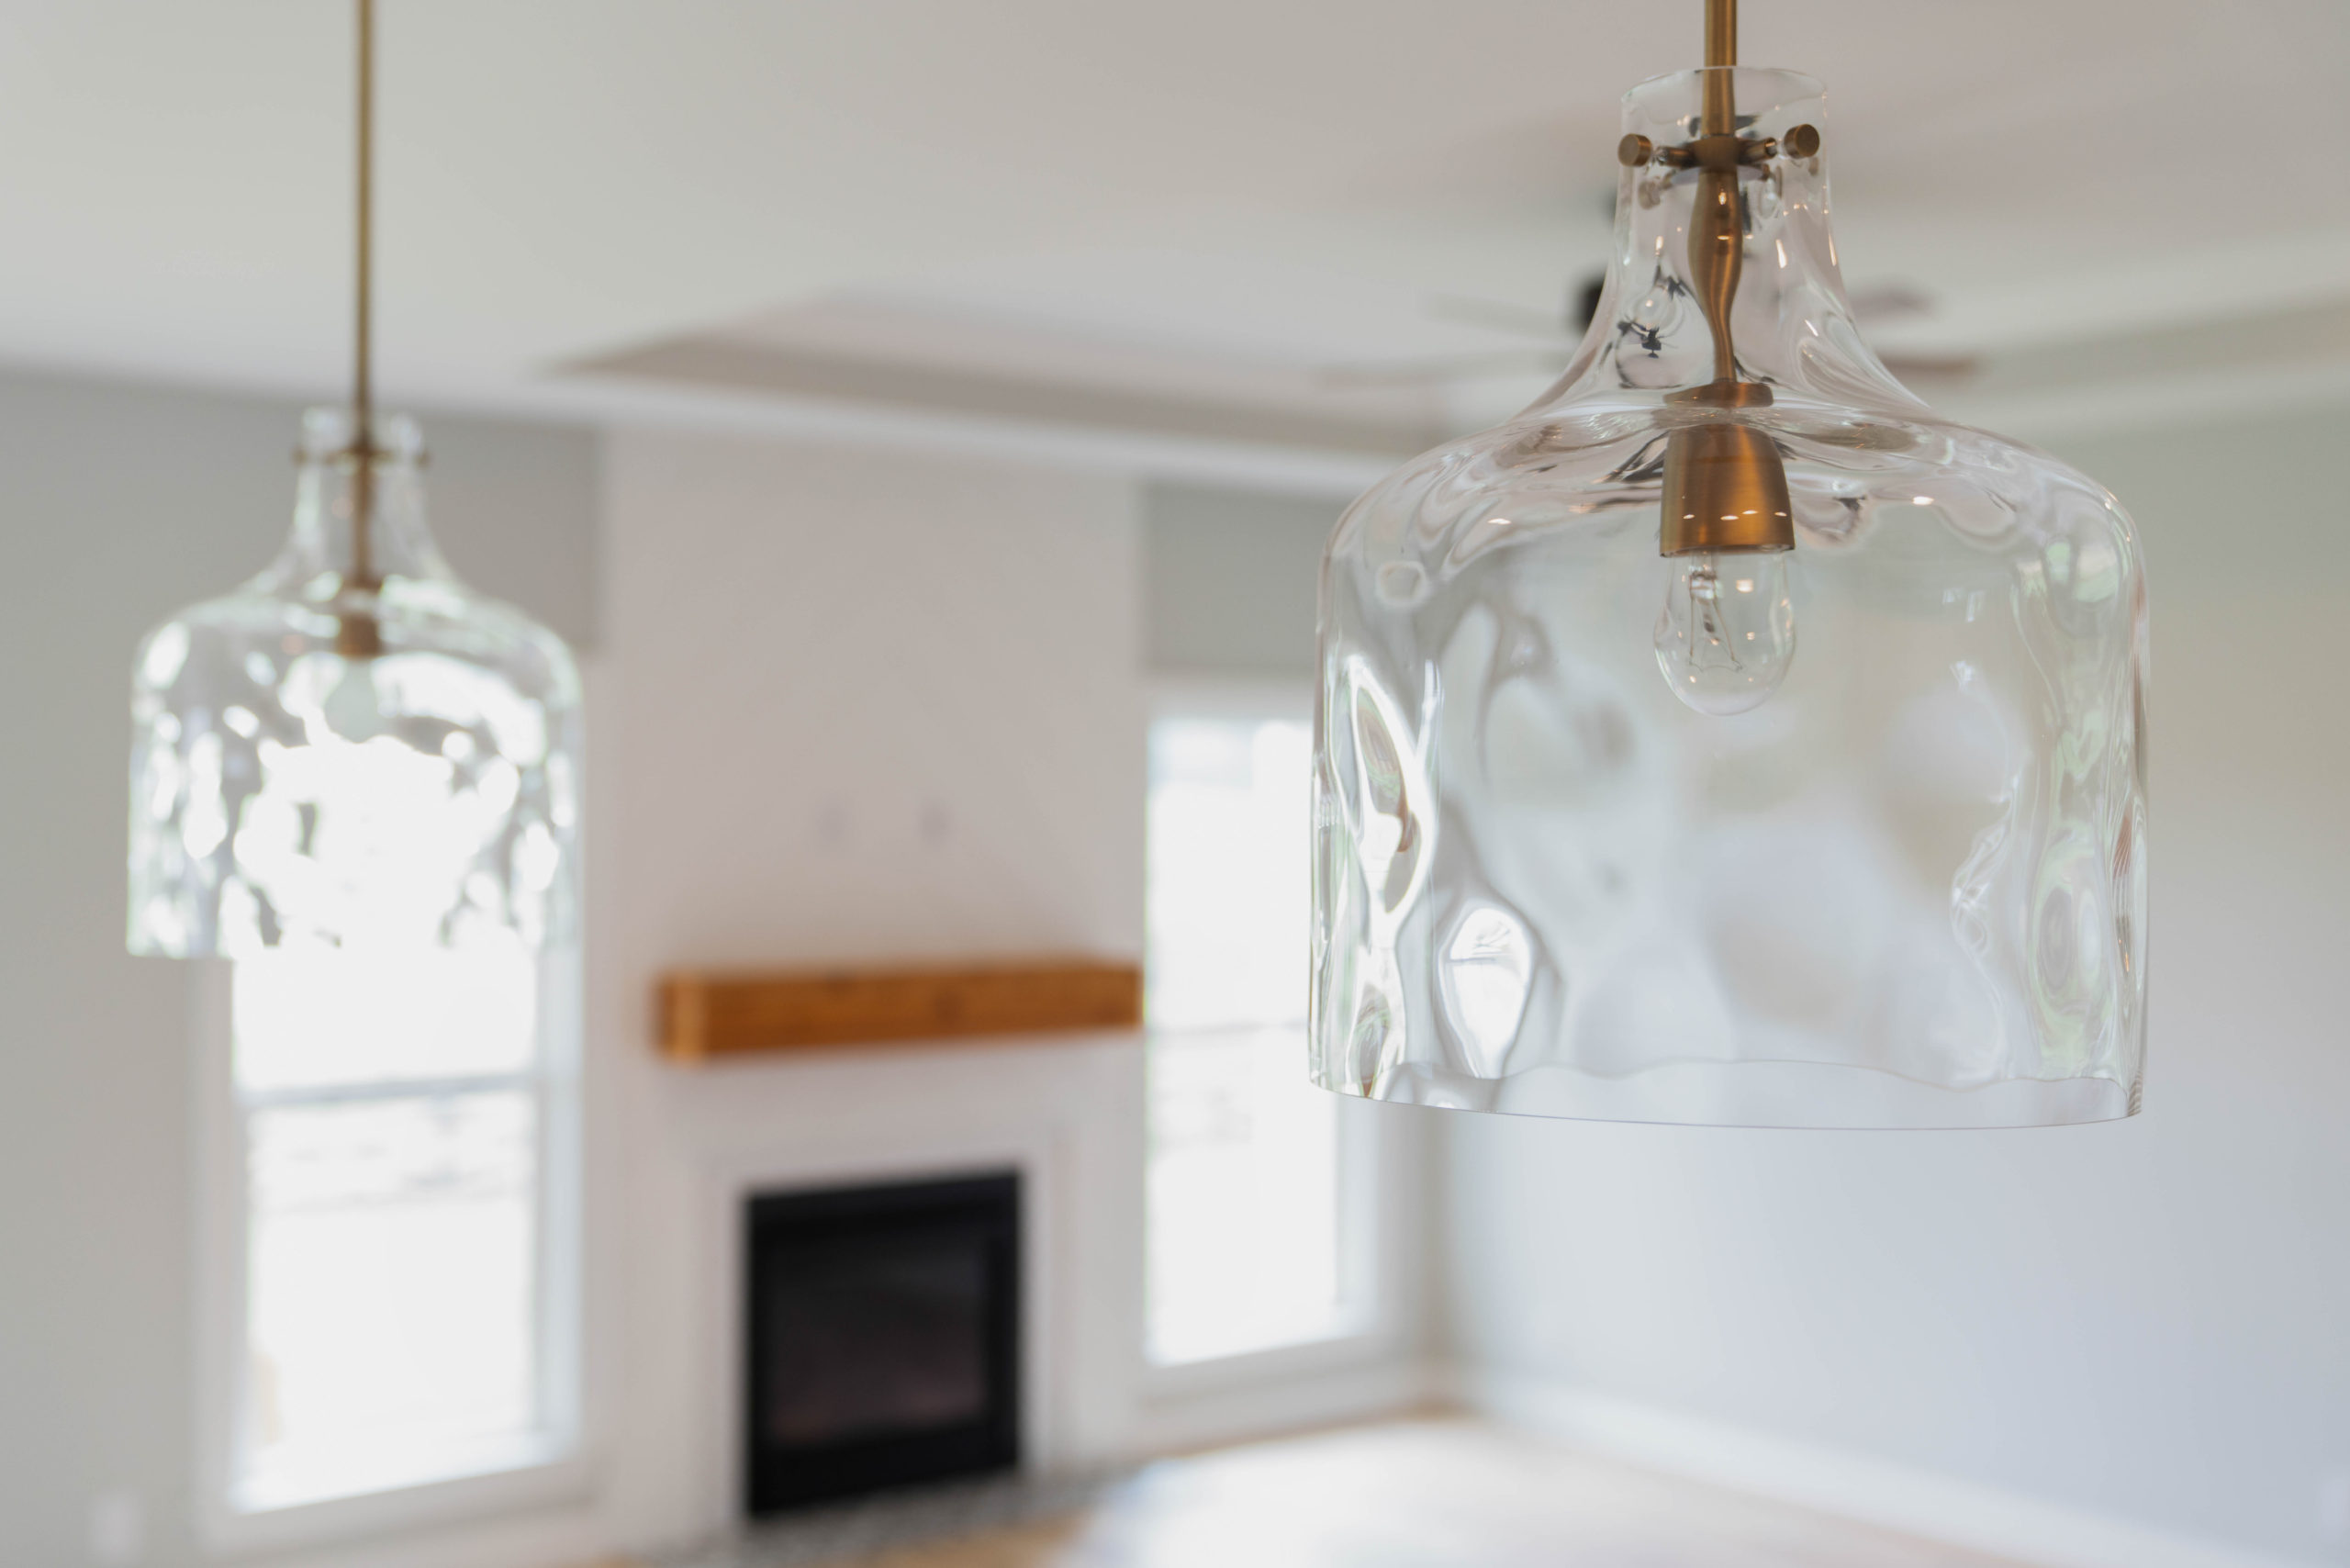 gold and glass pendant light fixtures